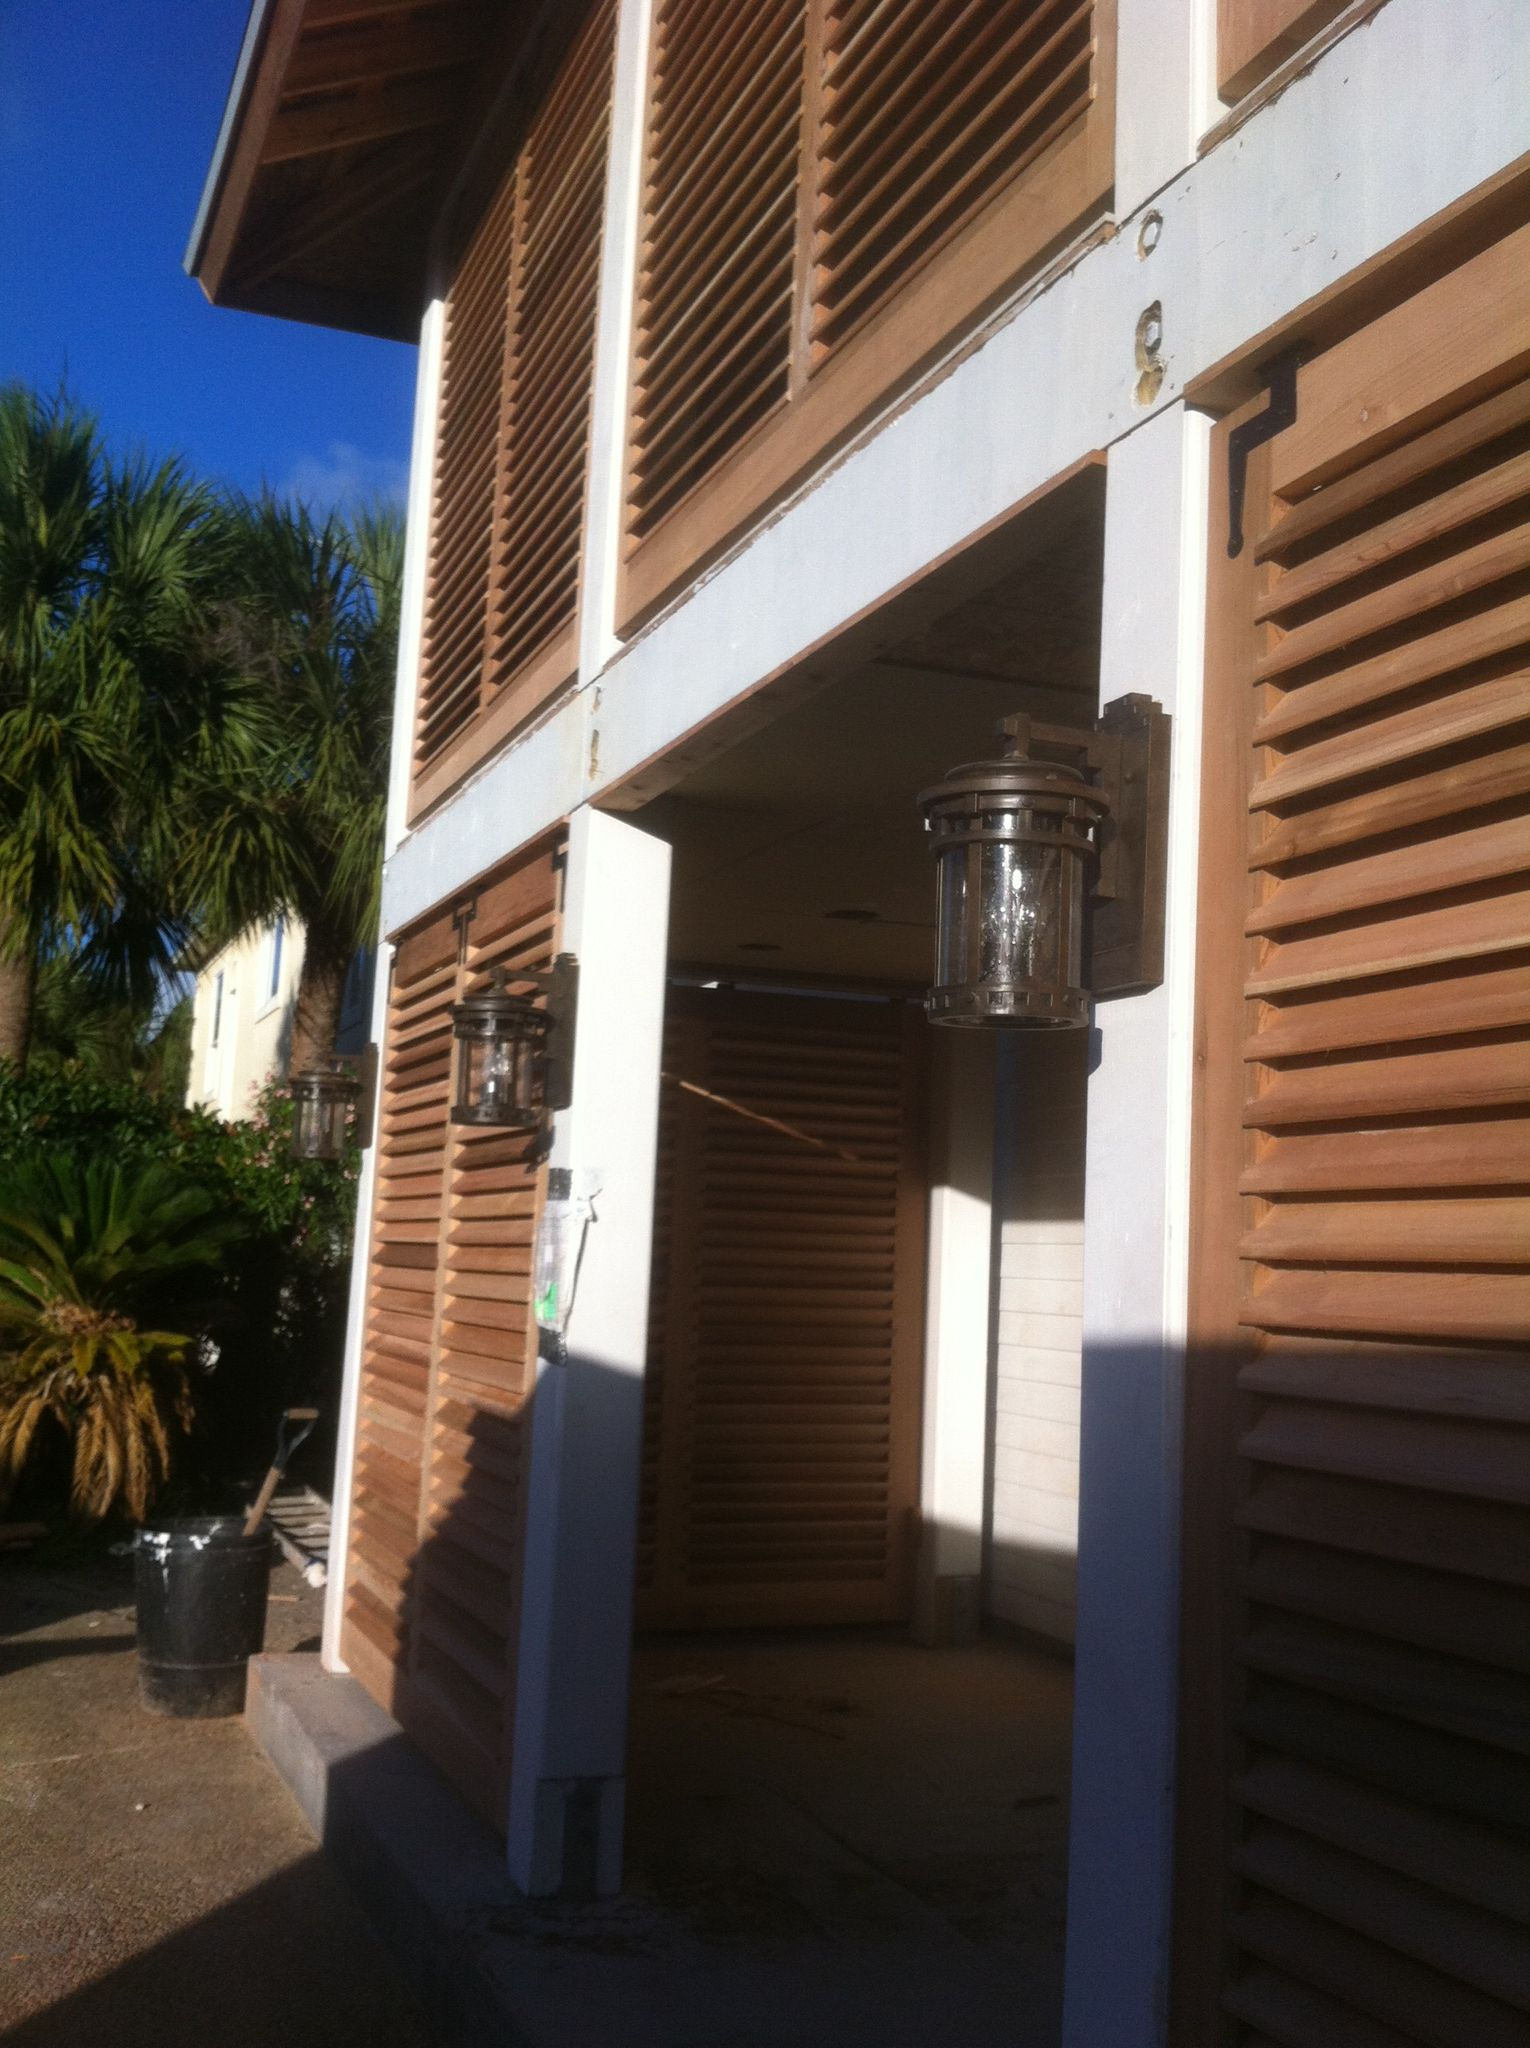 Window decorative shutters  beautiful texas coastal home completed with these bermuda shutters